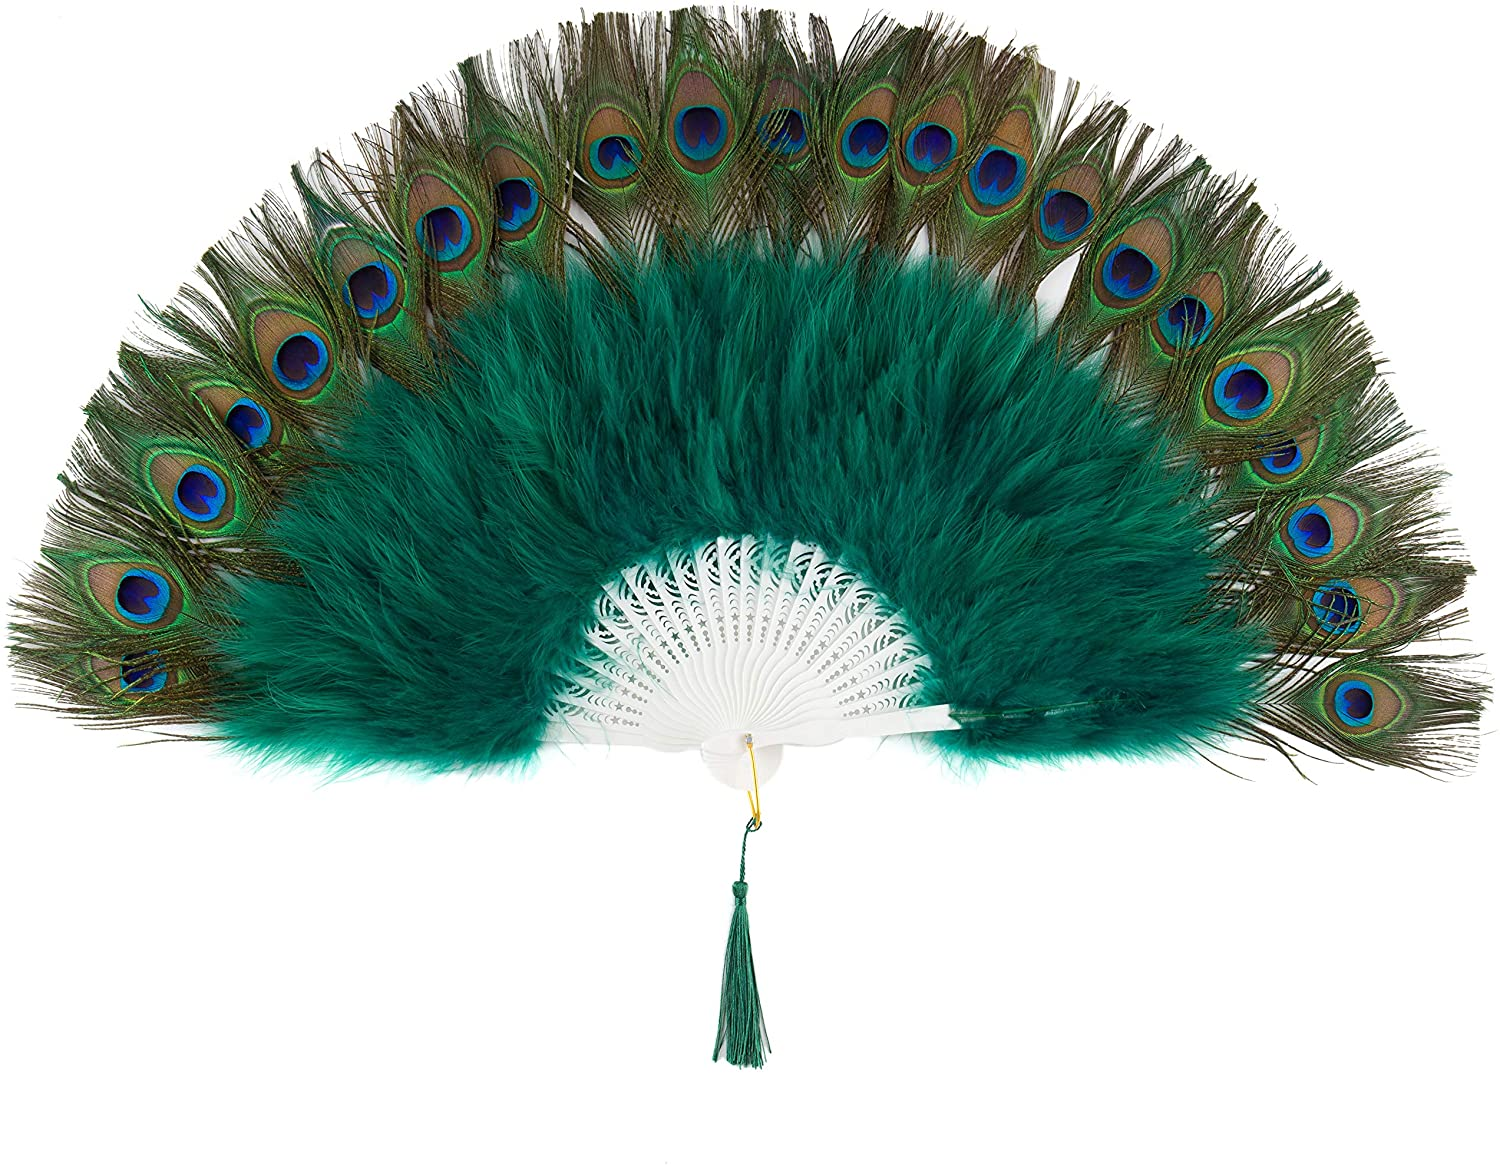 BABEYOND Roaring 20s Vintage Style Peacock & Black Marabou Feather Fan Flapper Accessories for Costume Halloween Dancing Party Tea Party Variety Show (Dark Green-White Rib)